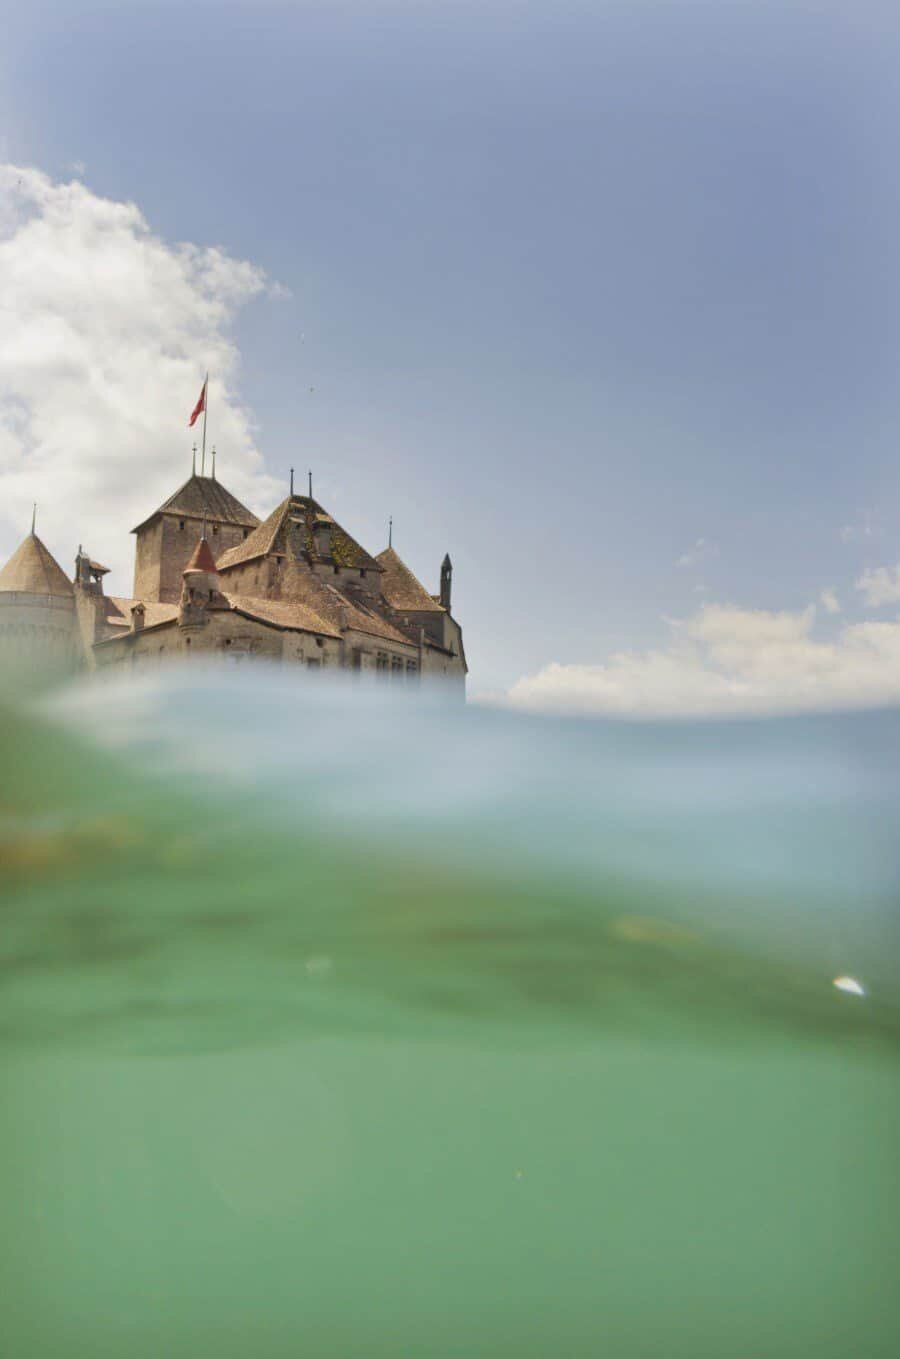 Chateau de Chillon, Lake Geneva, Switzerland